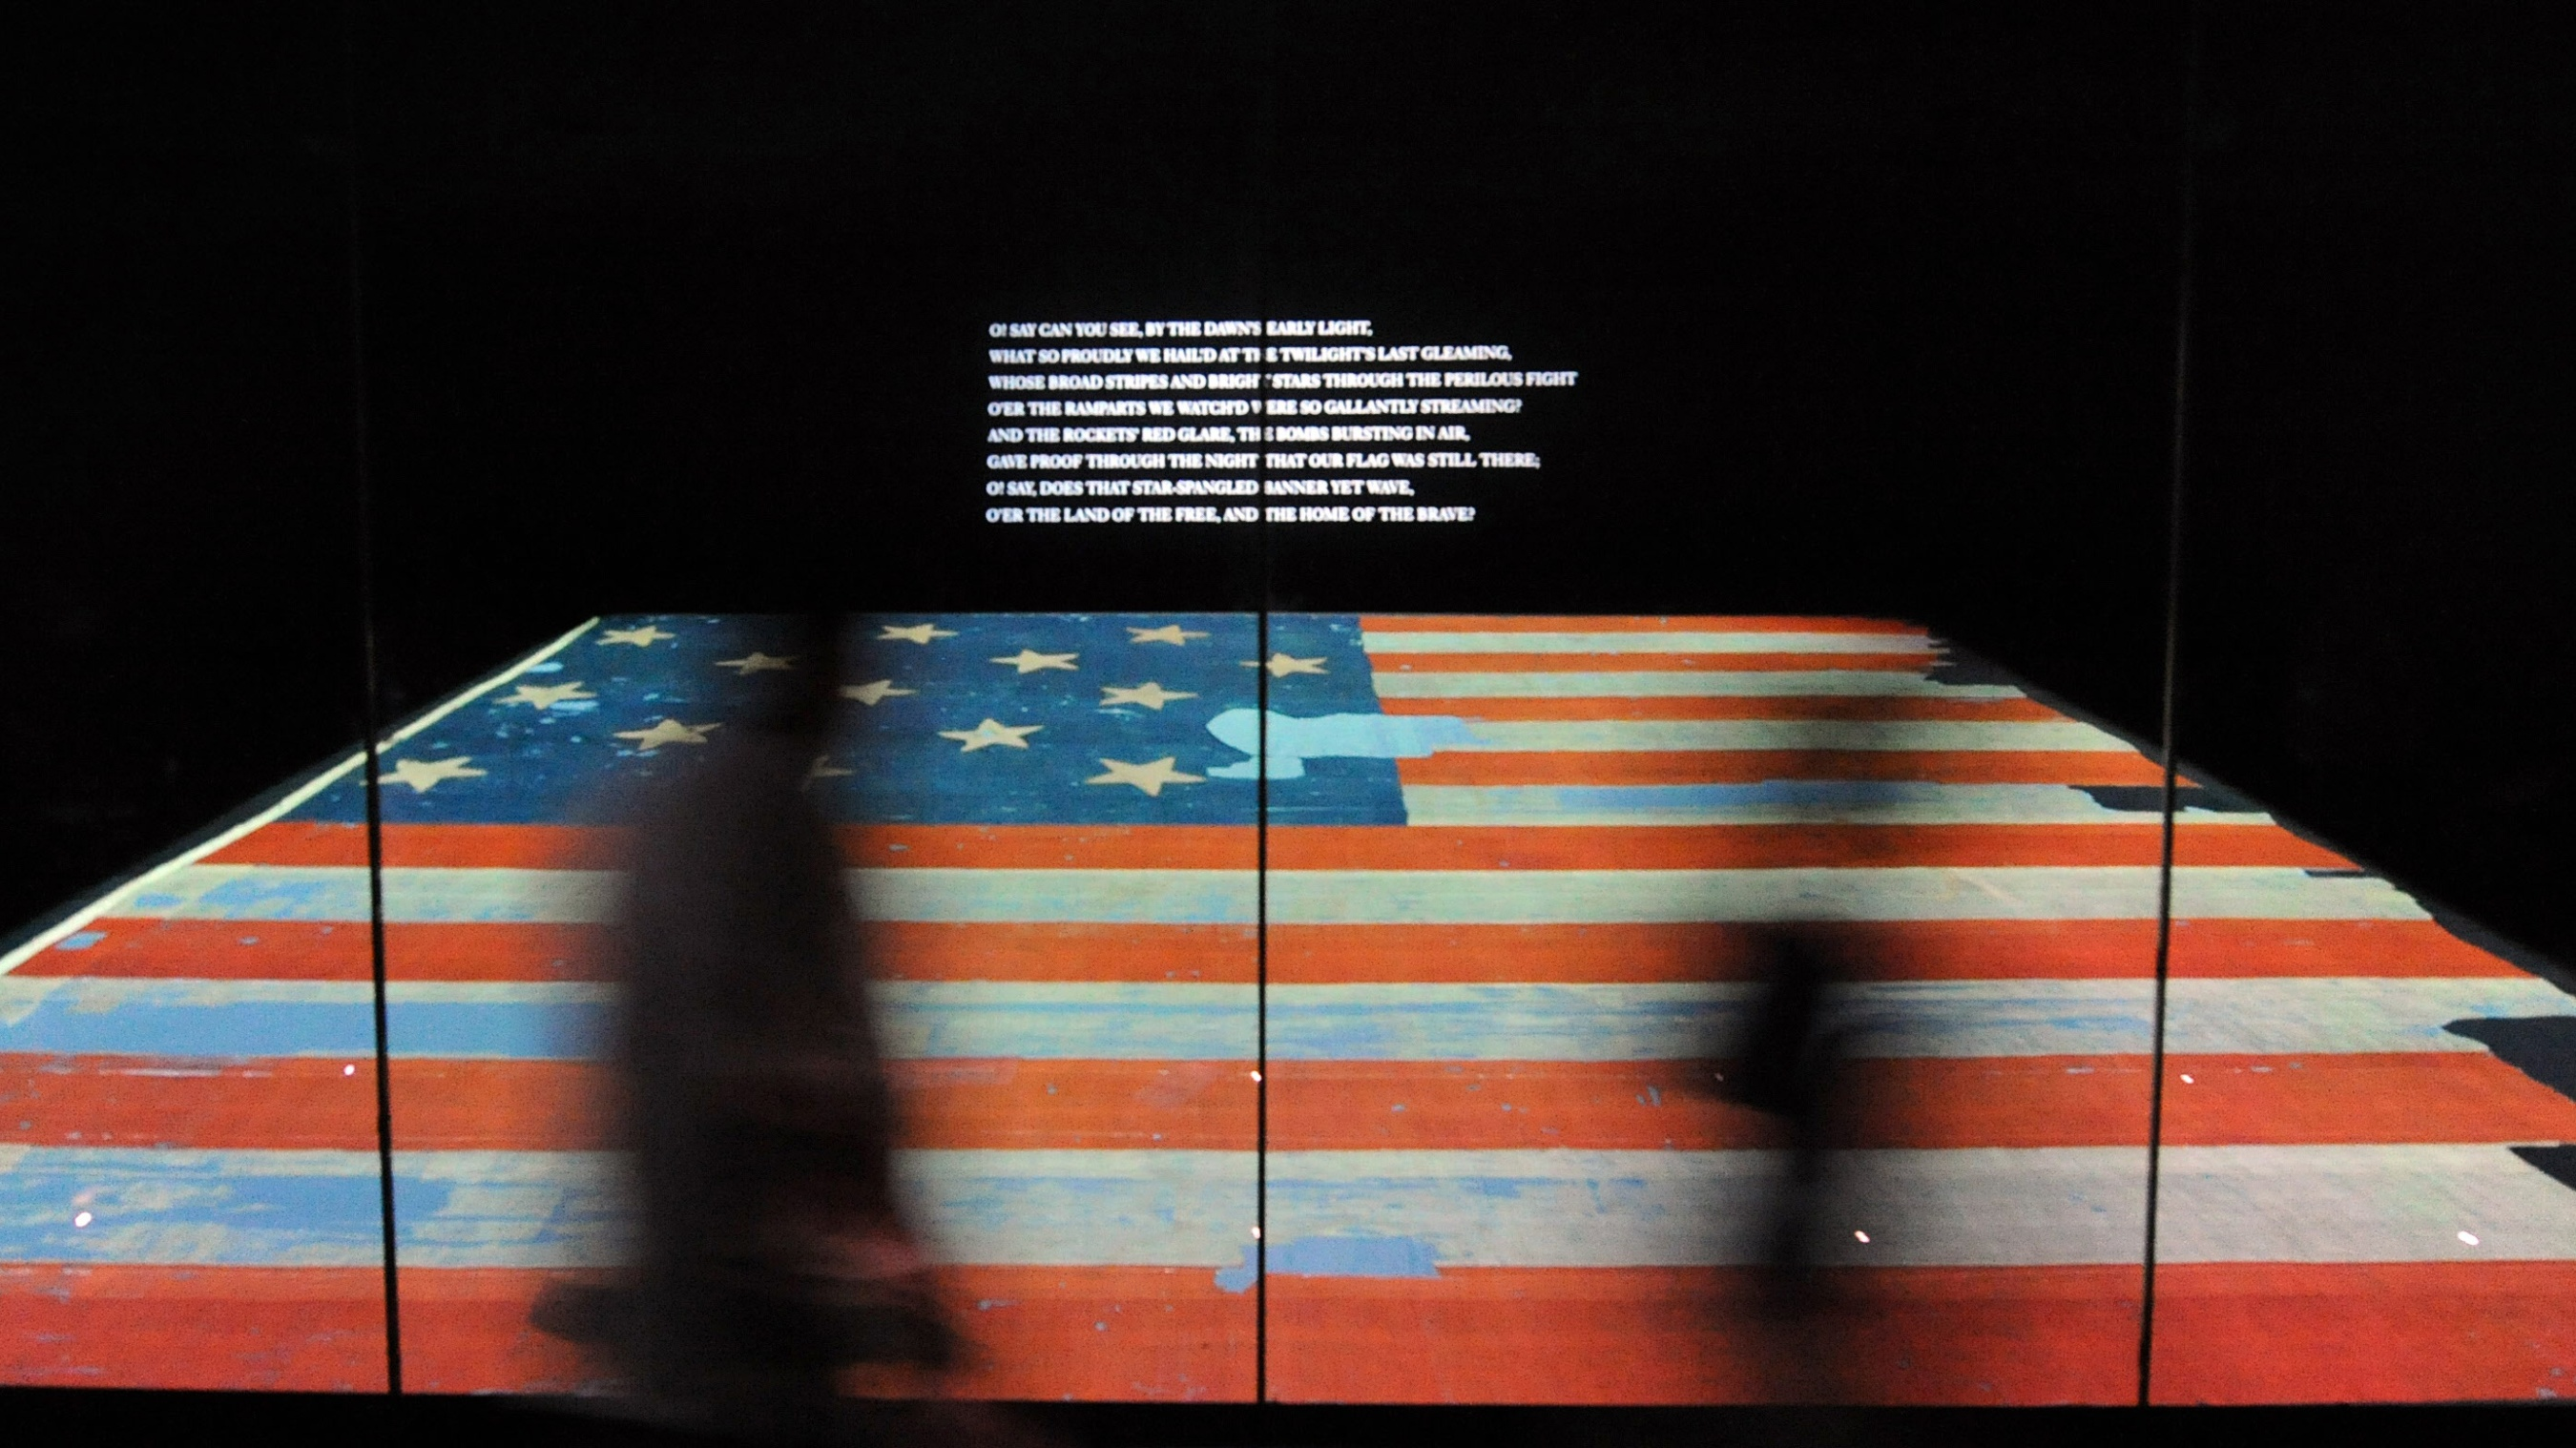 The Star Spangled Banners Racist Lyrics Reflect Its Slave Owner